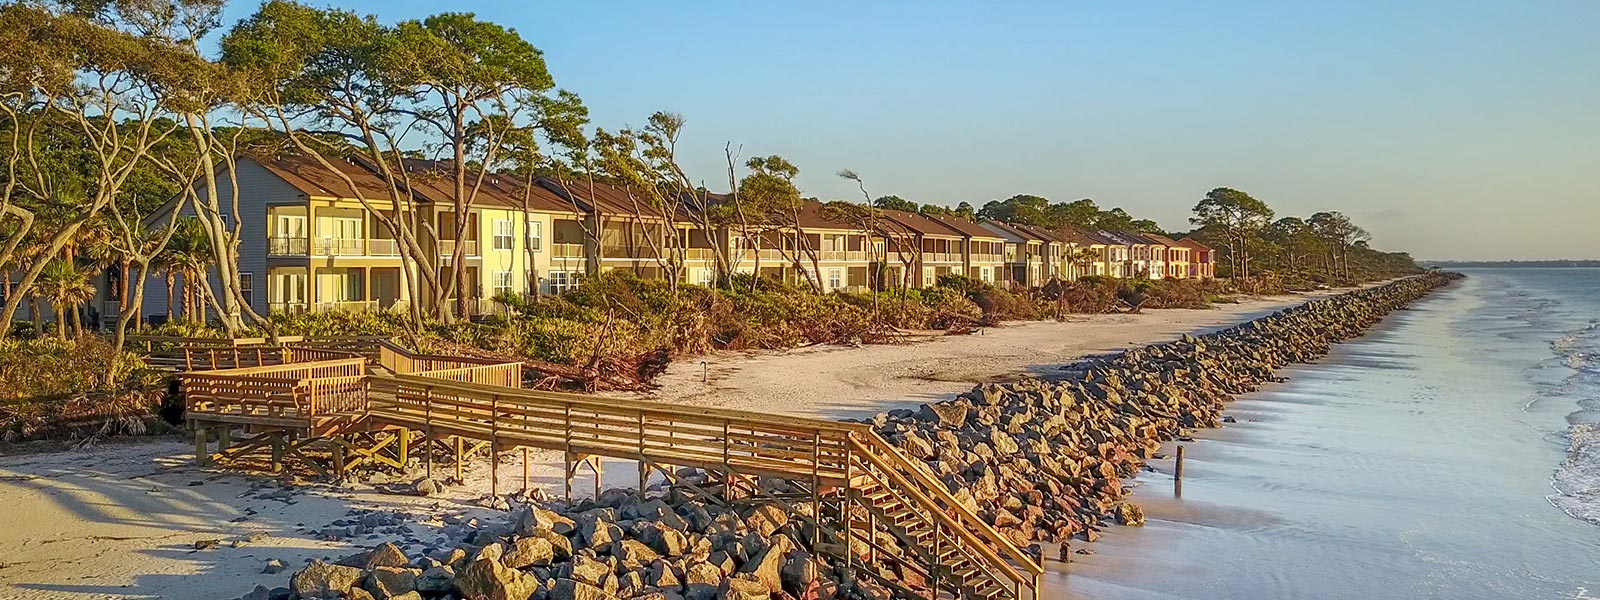 Beach Vacation Rentals on Jekyll Island